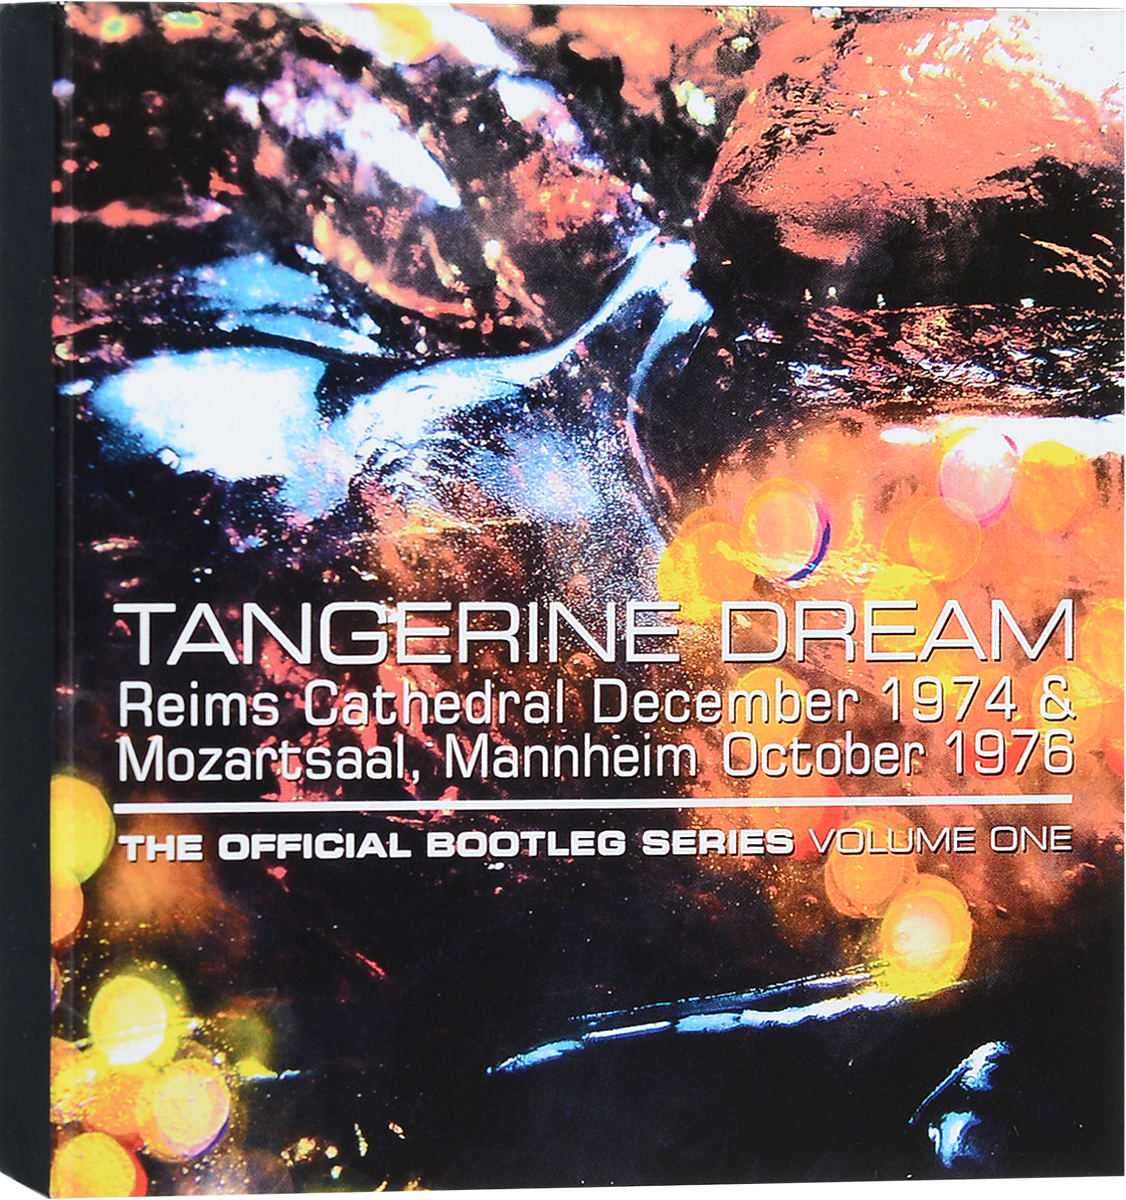 Tangerine Dream. The Official Bootleg Series Volume One (4 CD)